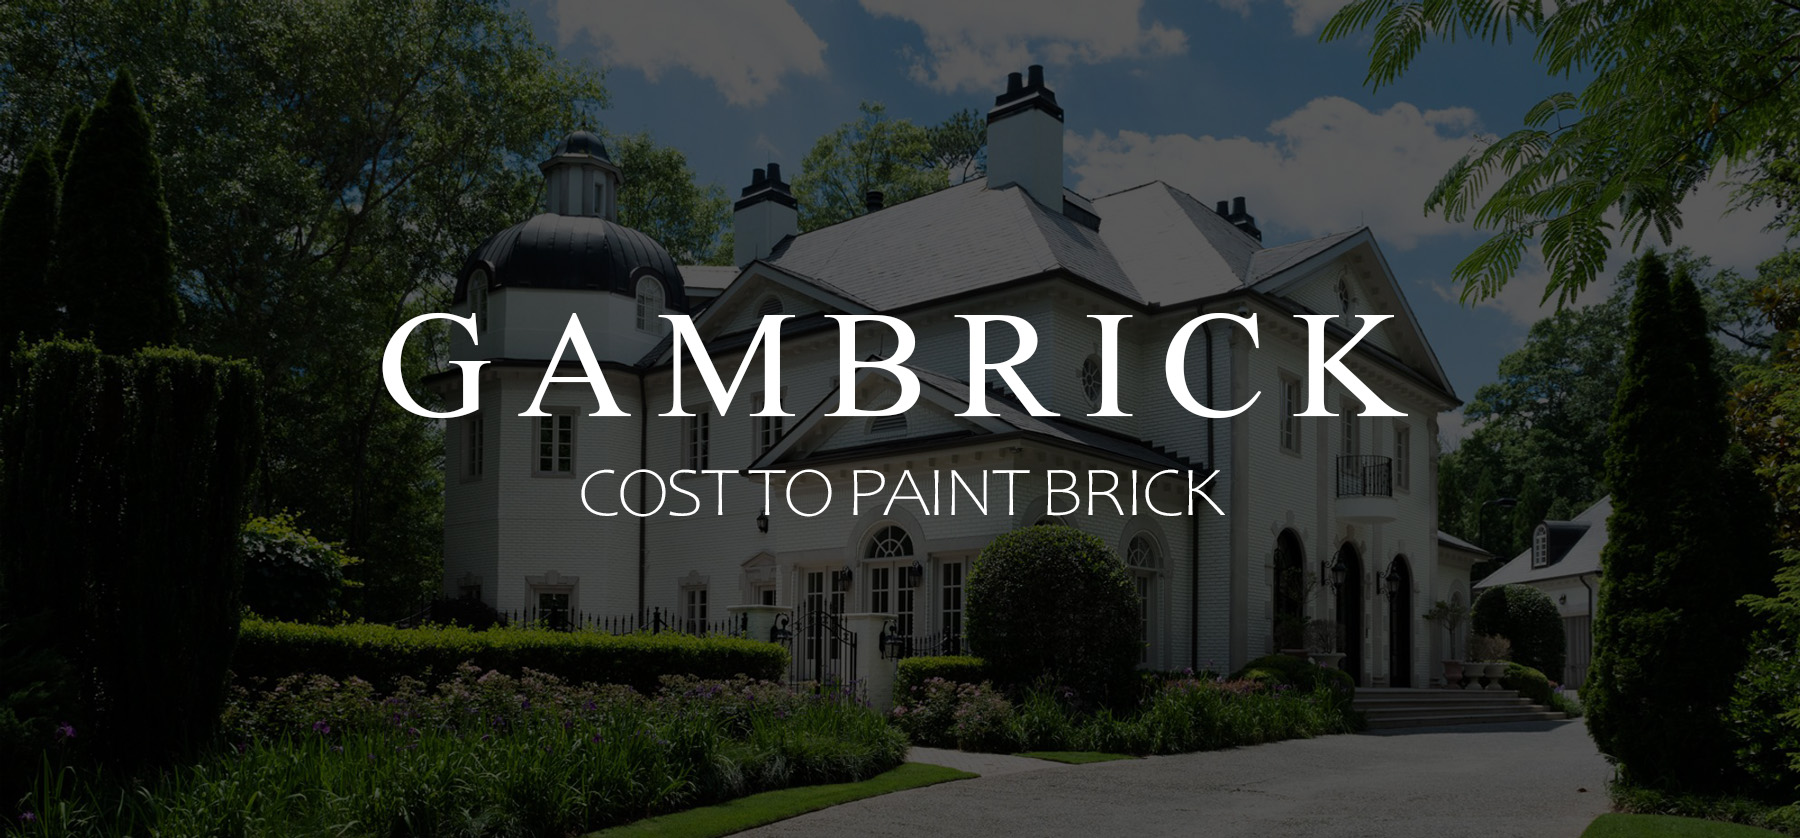 Cost to paint brick banner 1